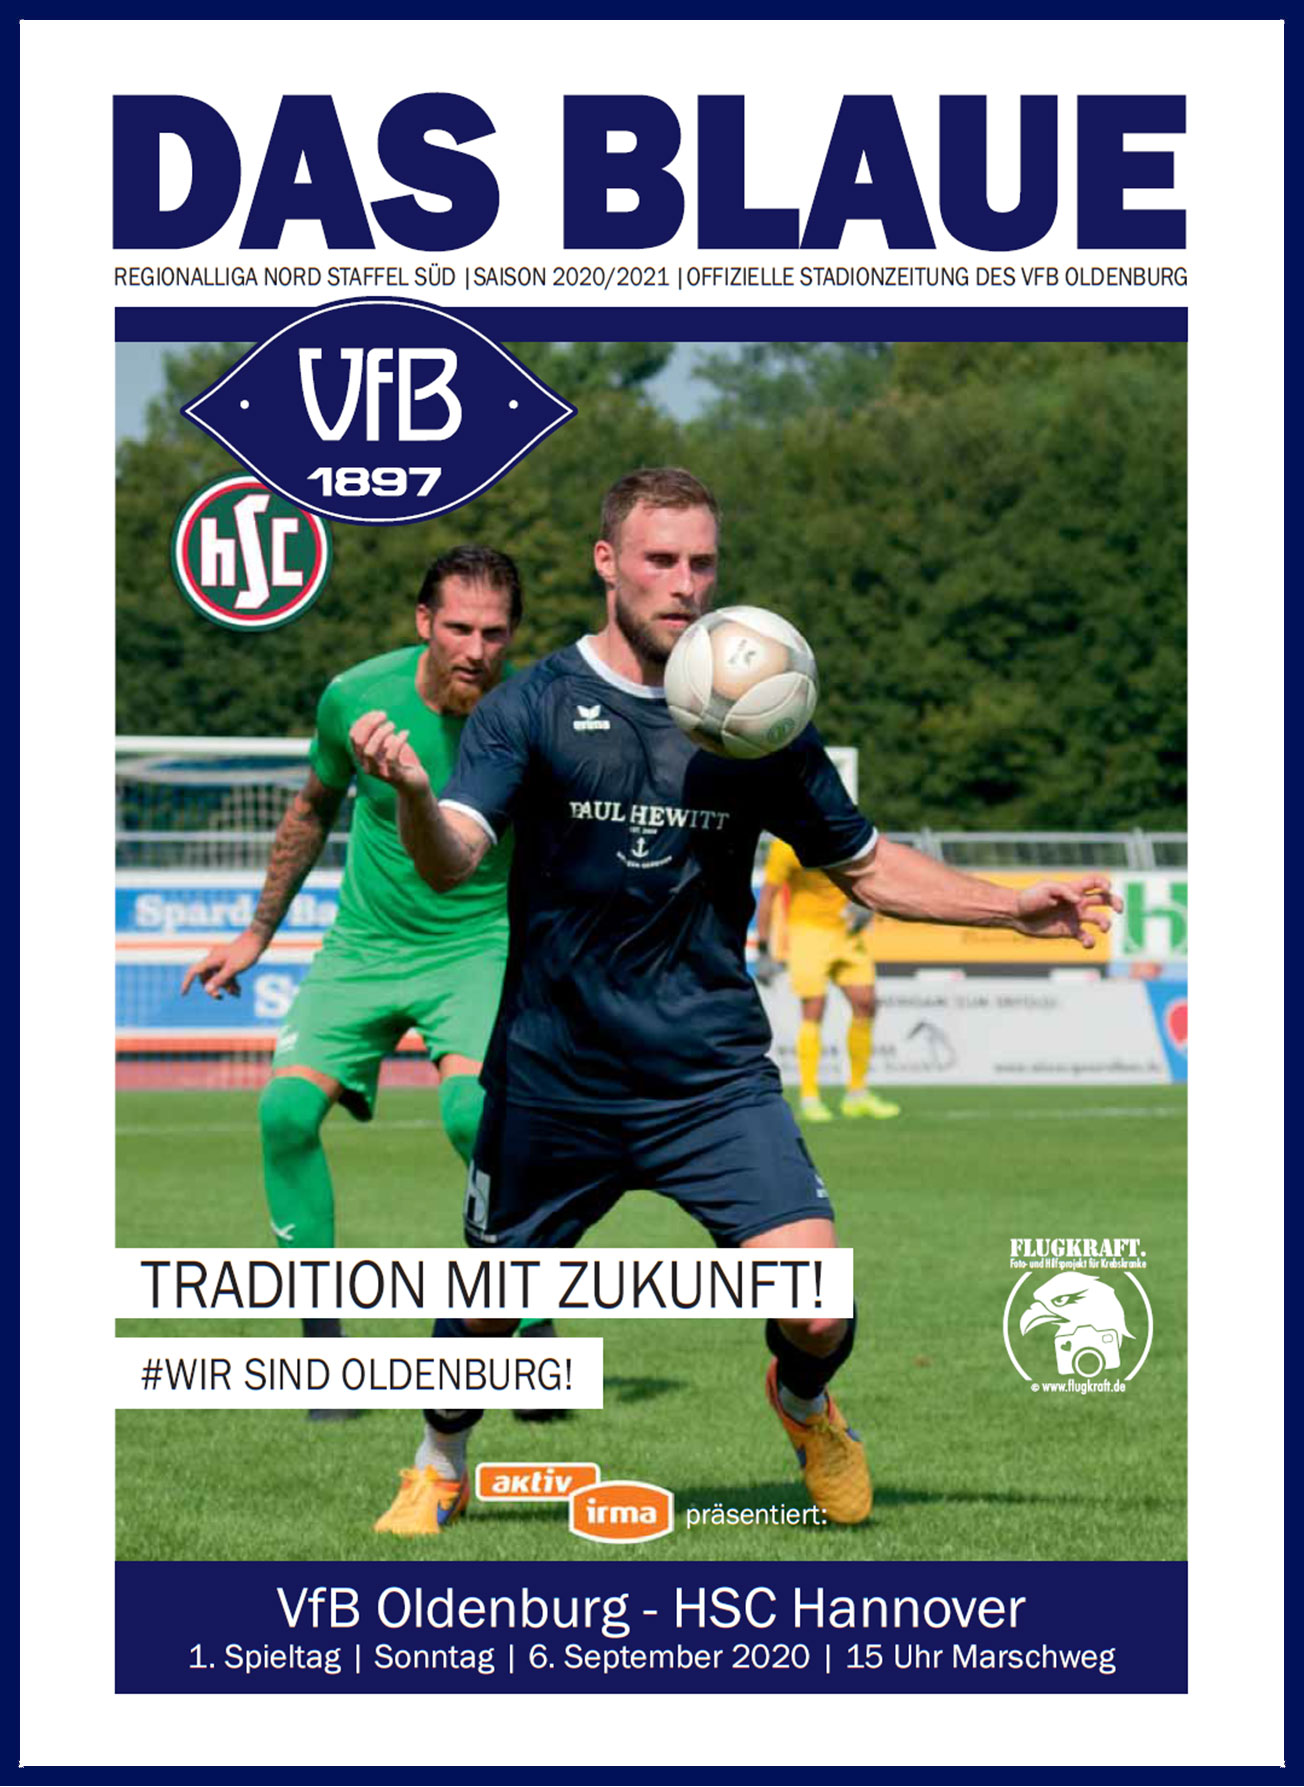 https://vfb-oldenburg.de/wp-content/uploads/2020/09/VFB_Oldenburg_1_Spieltag_2020_2021.jpg